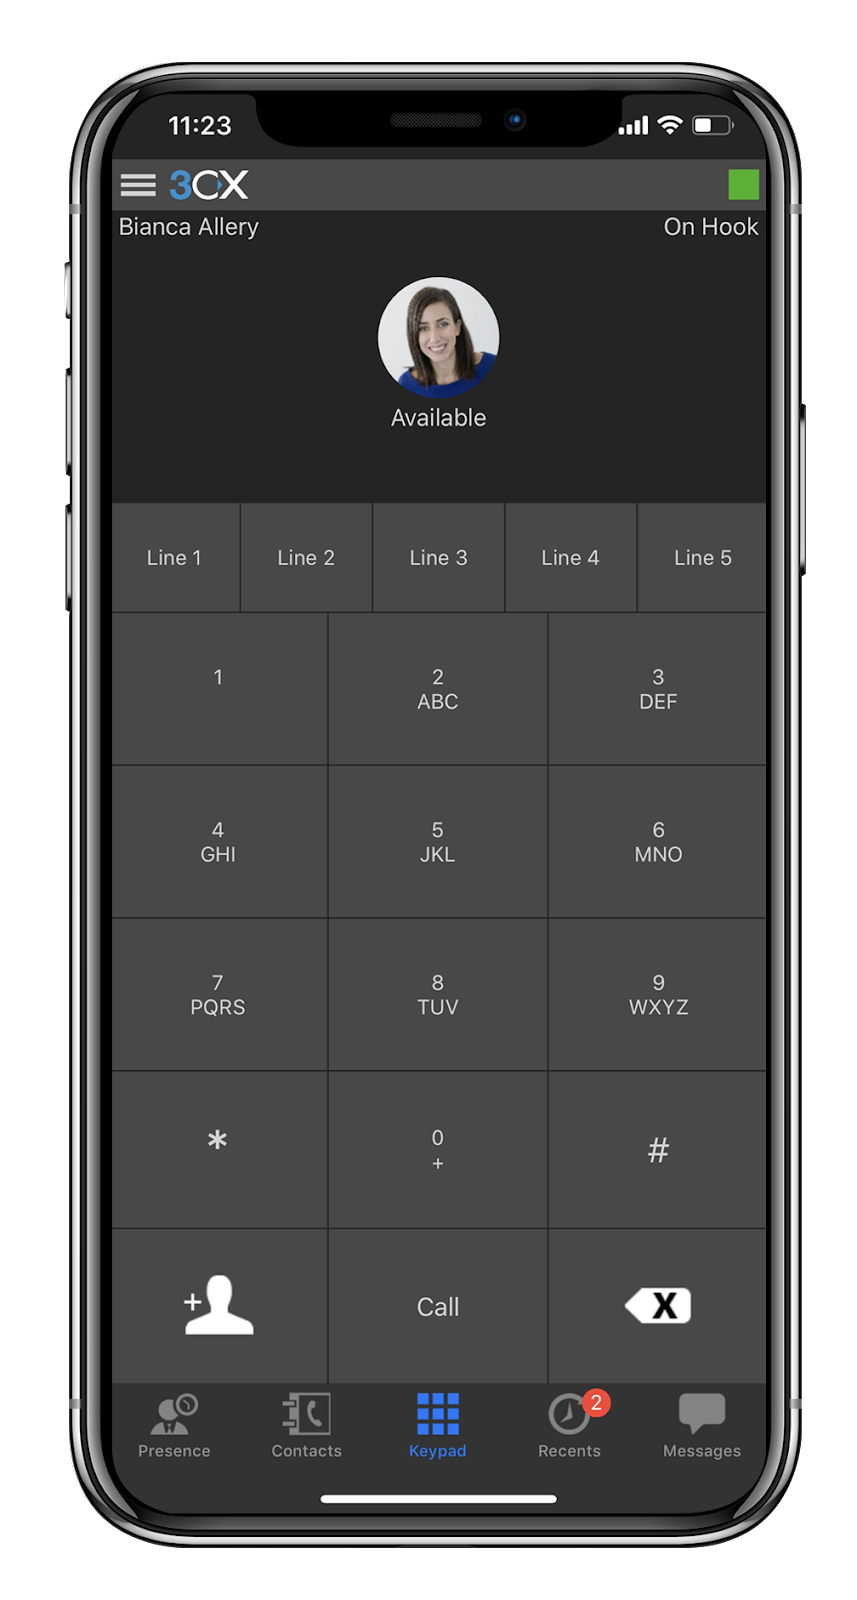 The 3CX App for iOS on iPhone 6.